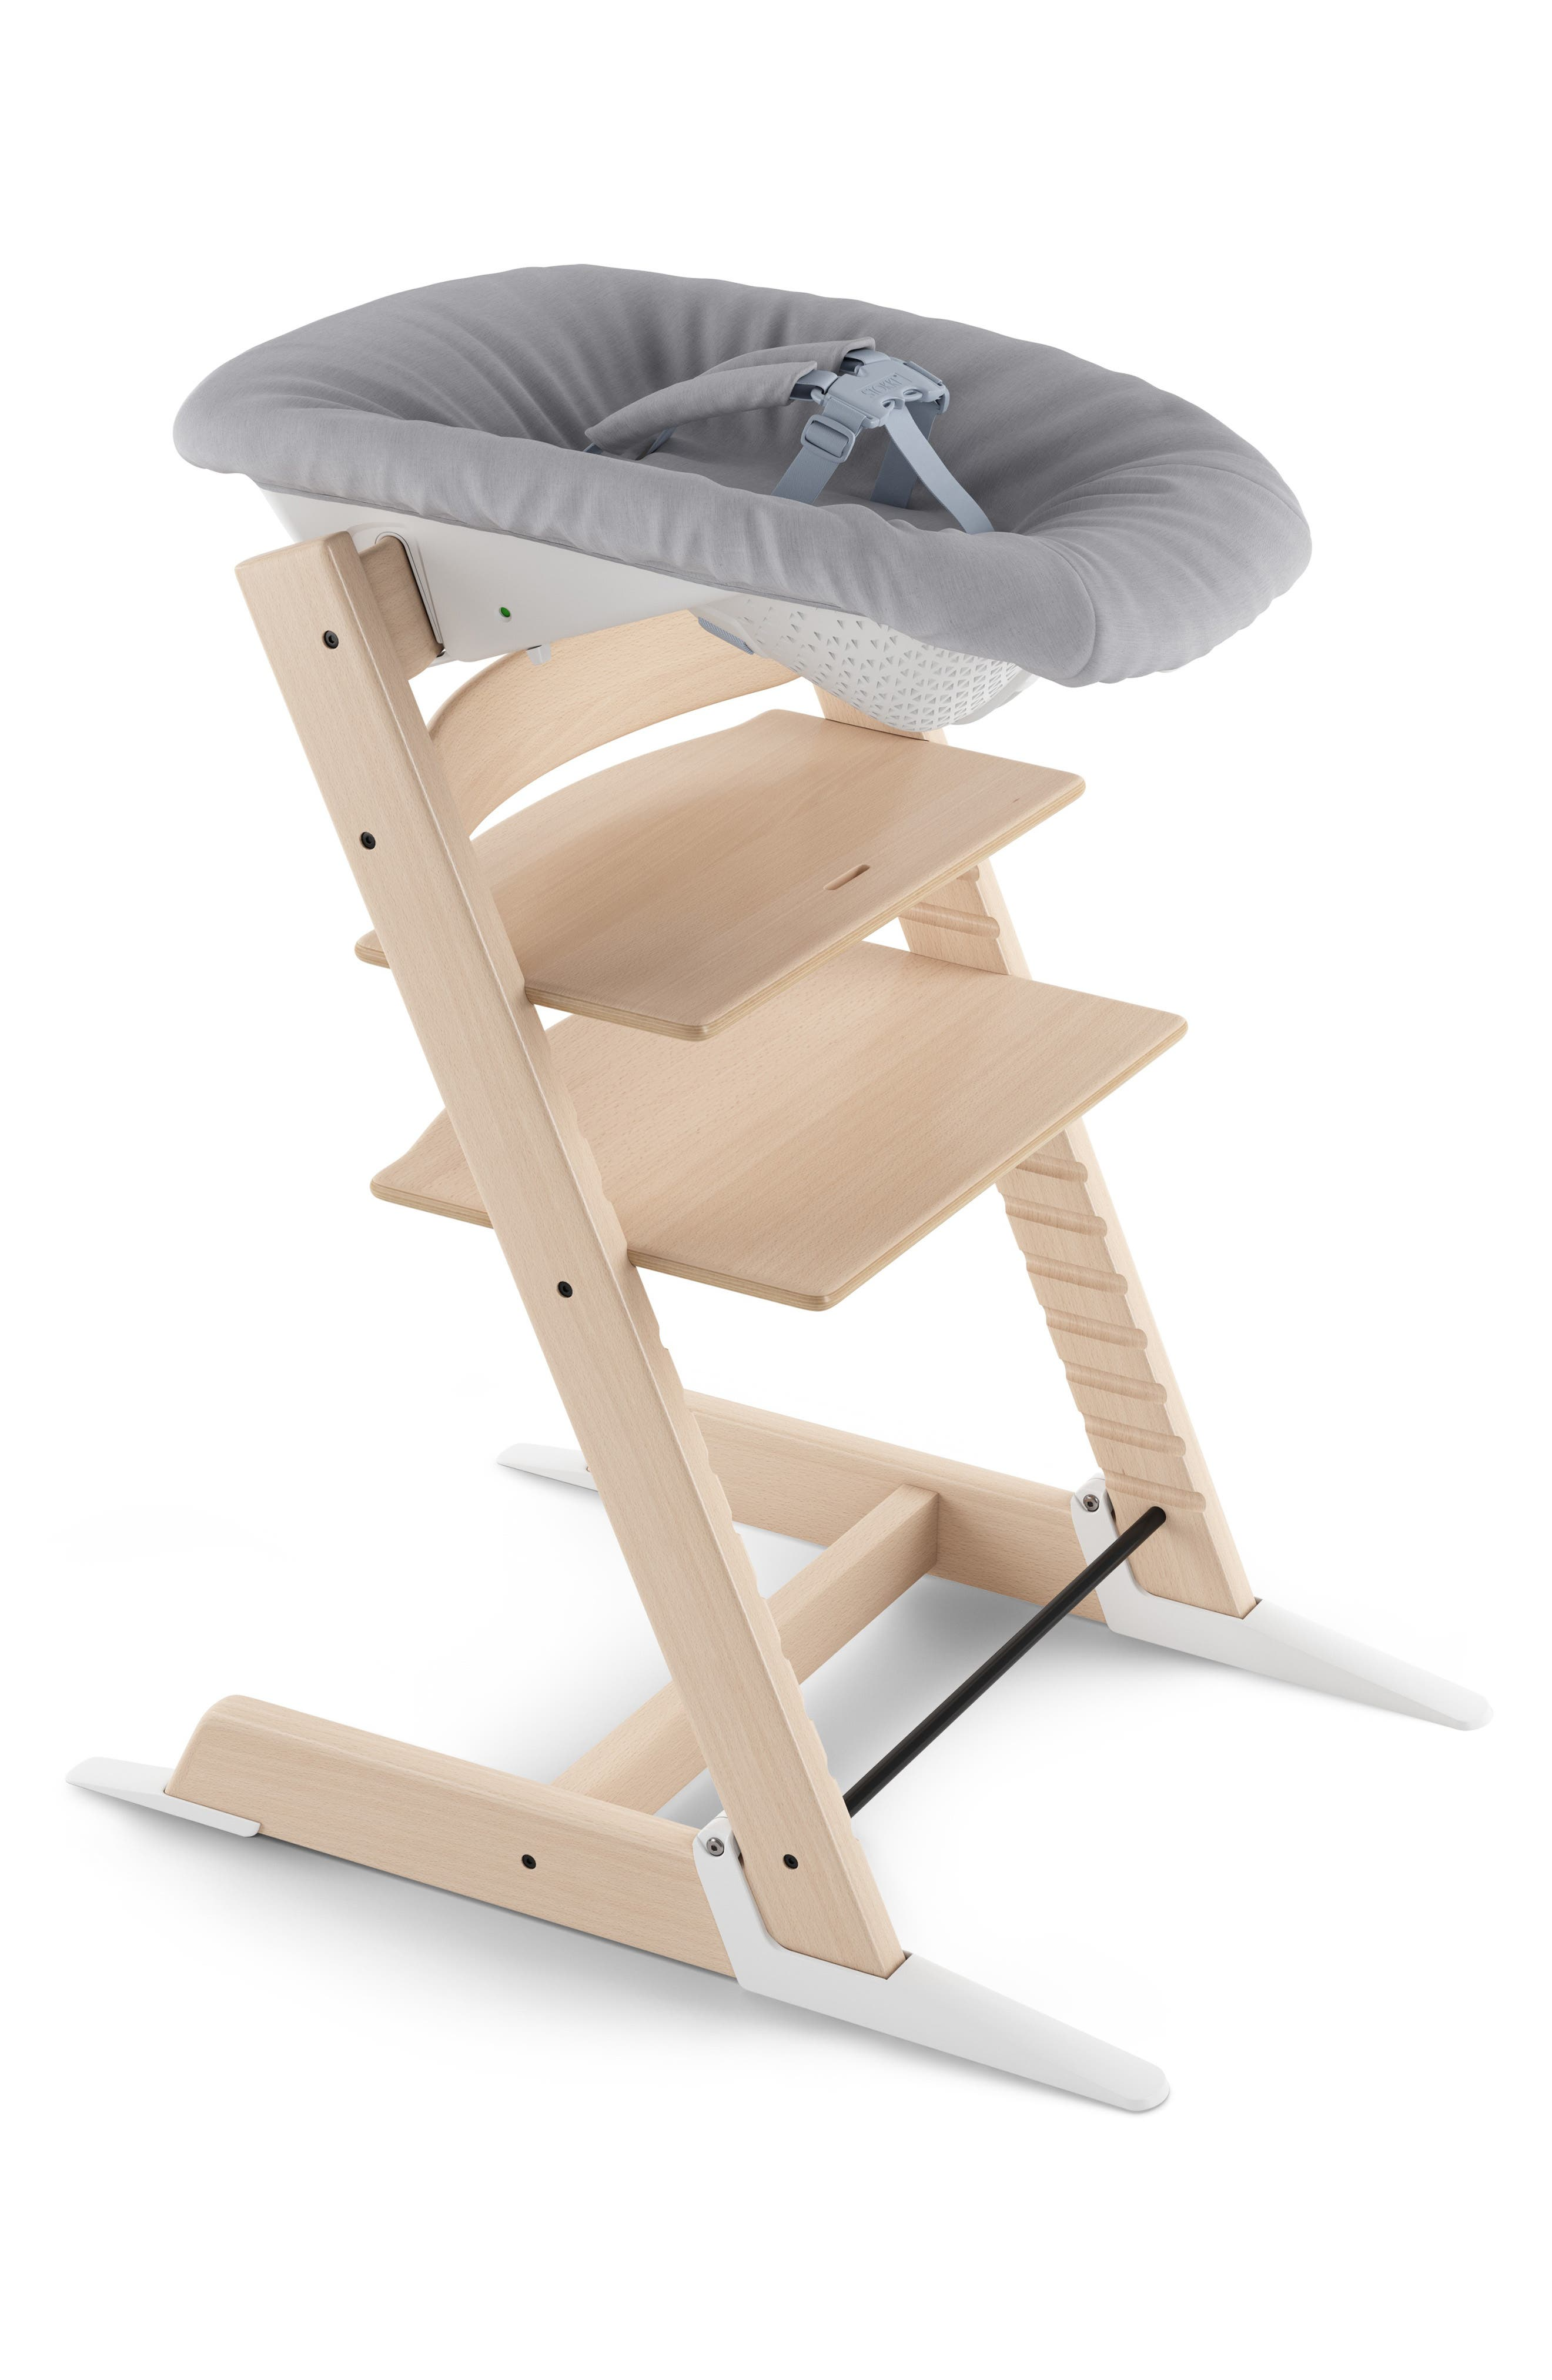 STOKKE,                              Tripp Trapp<sup>®</sup> Newborn Set,                             Alternate thumbnail 2, color,                             GREY